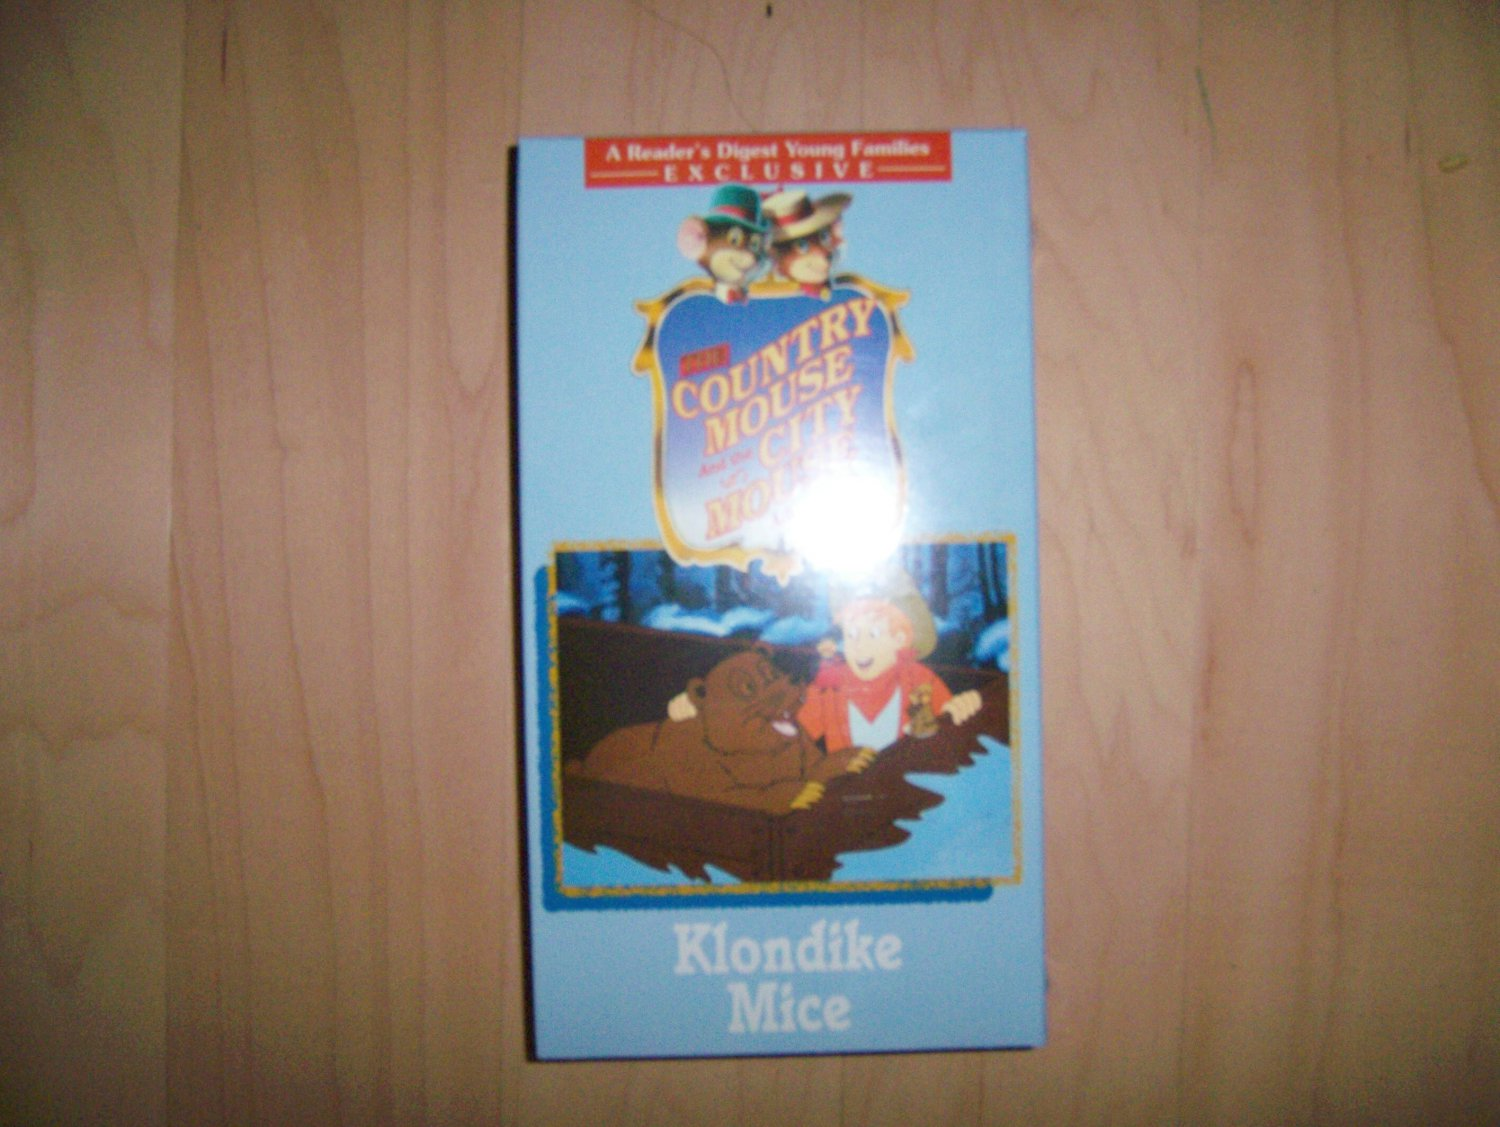 VHS Country & City Mouse Adventures  Klondike Mice BNK787